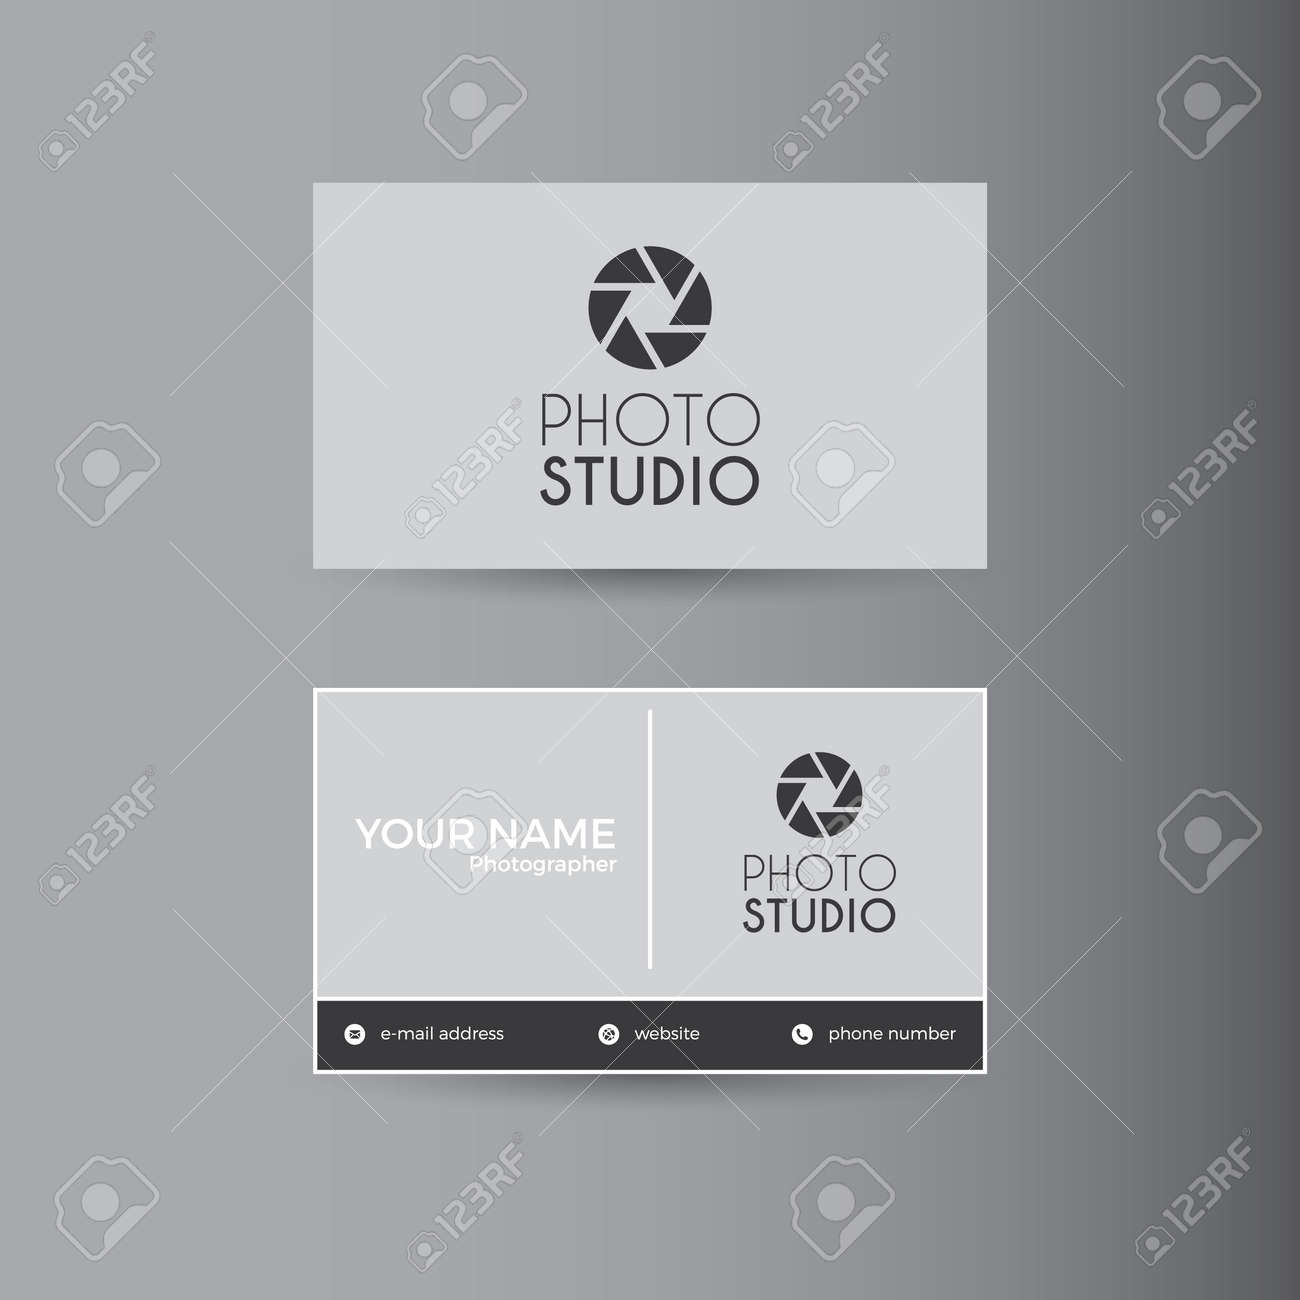 Simple Template For Photography Business Card Royalty Free Cliparts ...